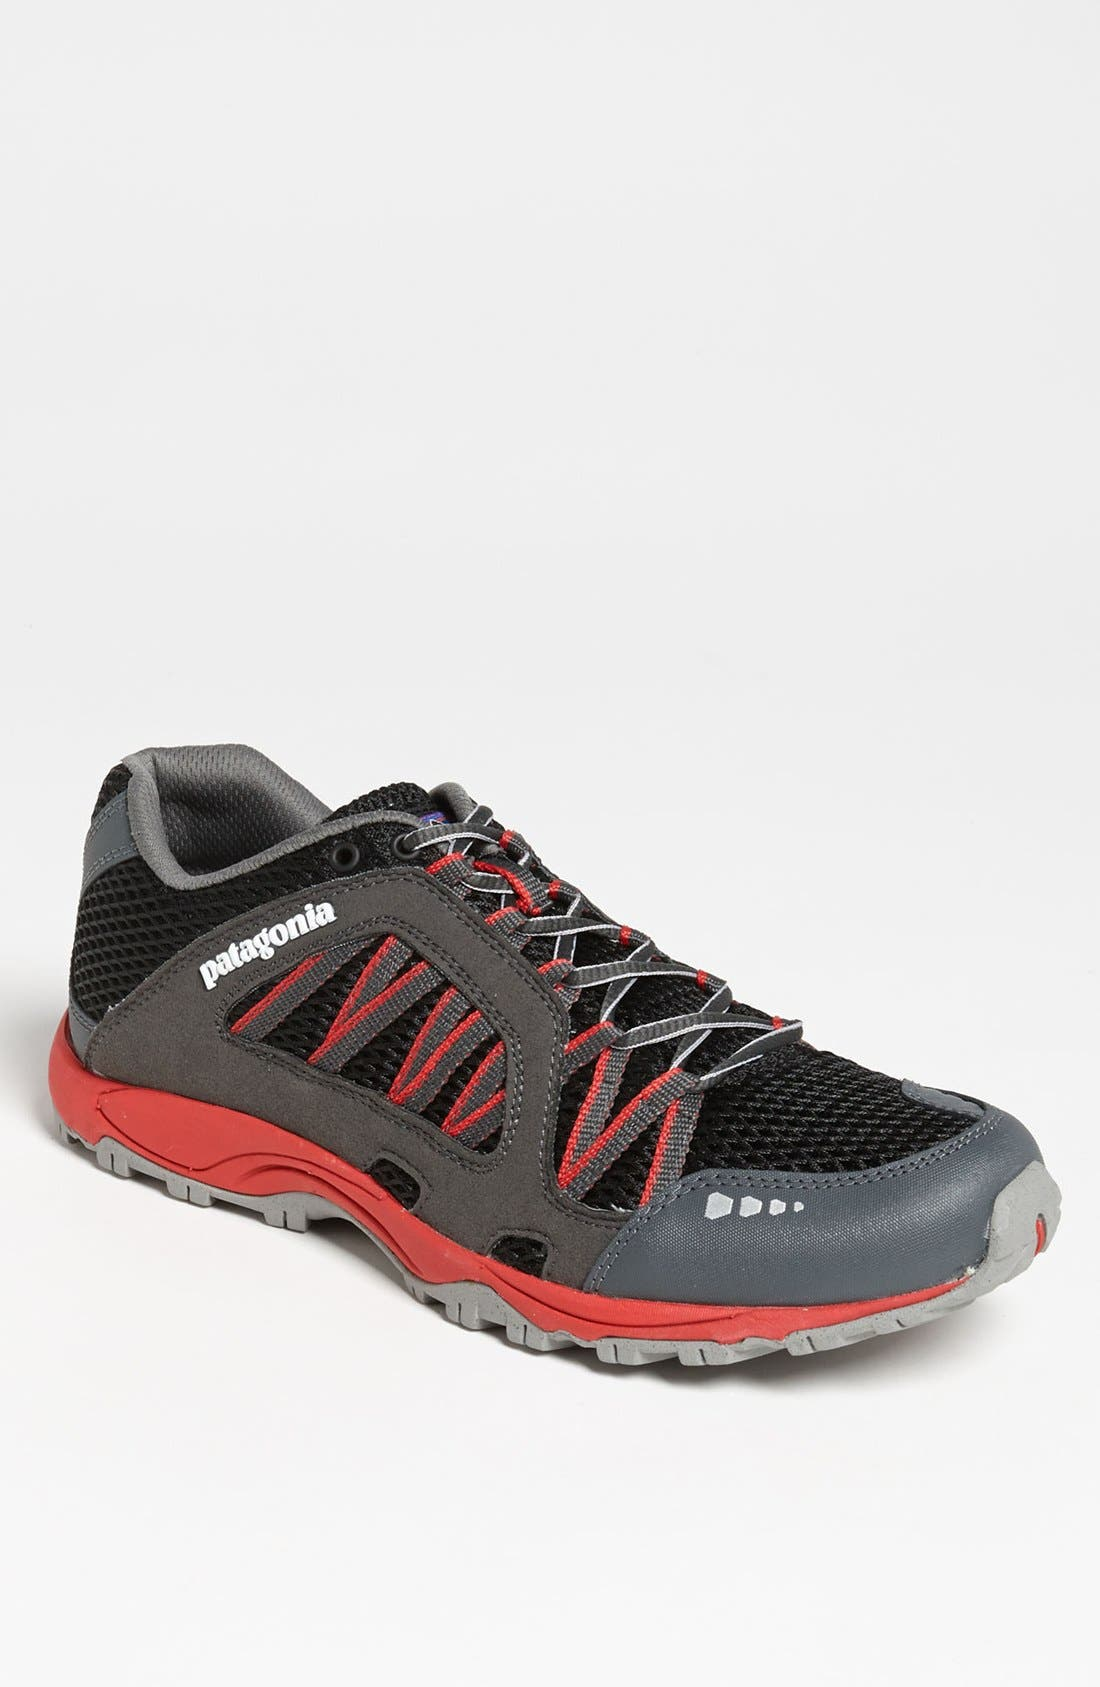 Alternate Image 1 Selected - Patagonia 'Fore Runner' Trail Running Shoe (Men)